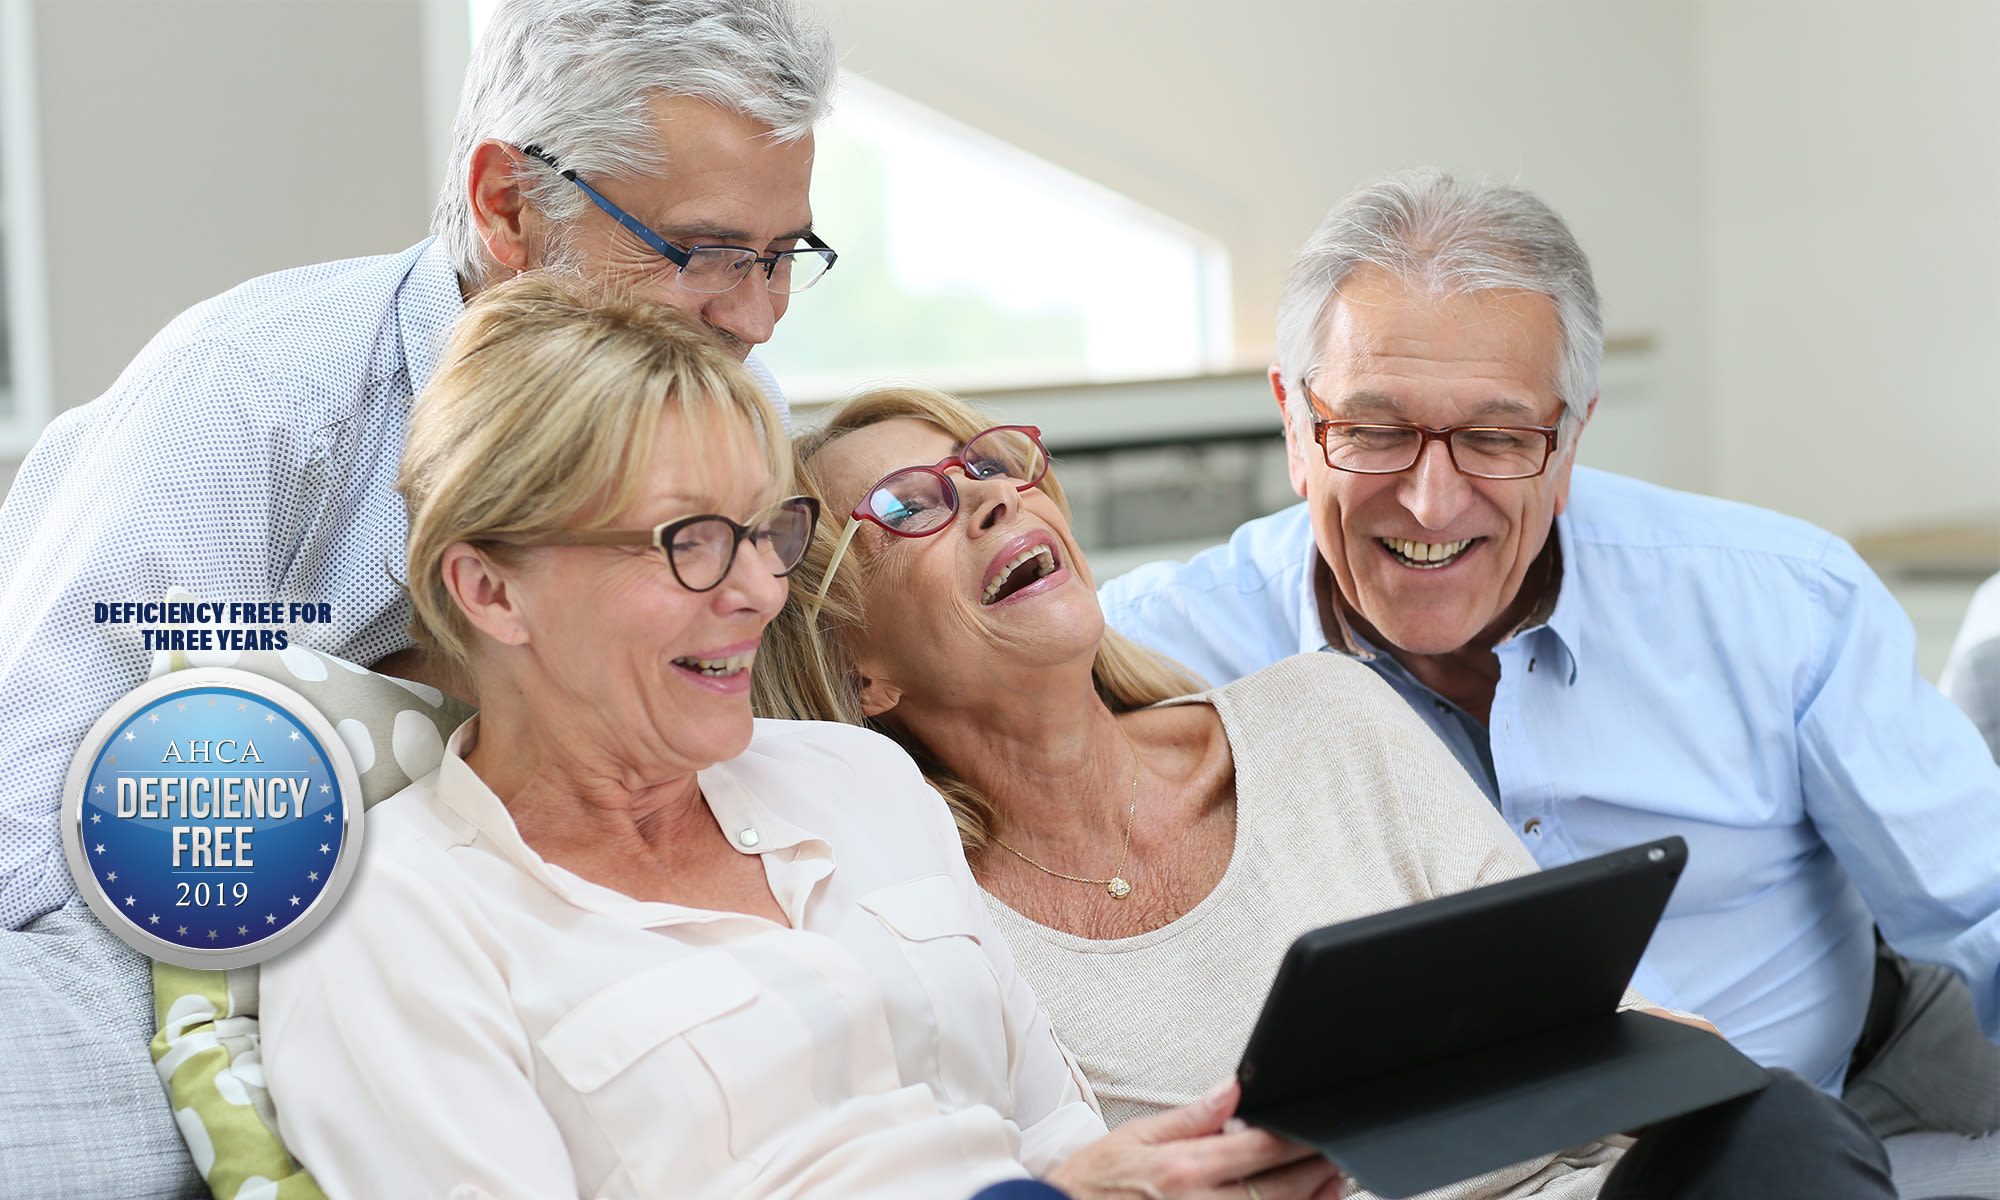 seniors laughing at something funny on a tablet